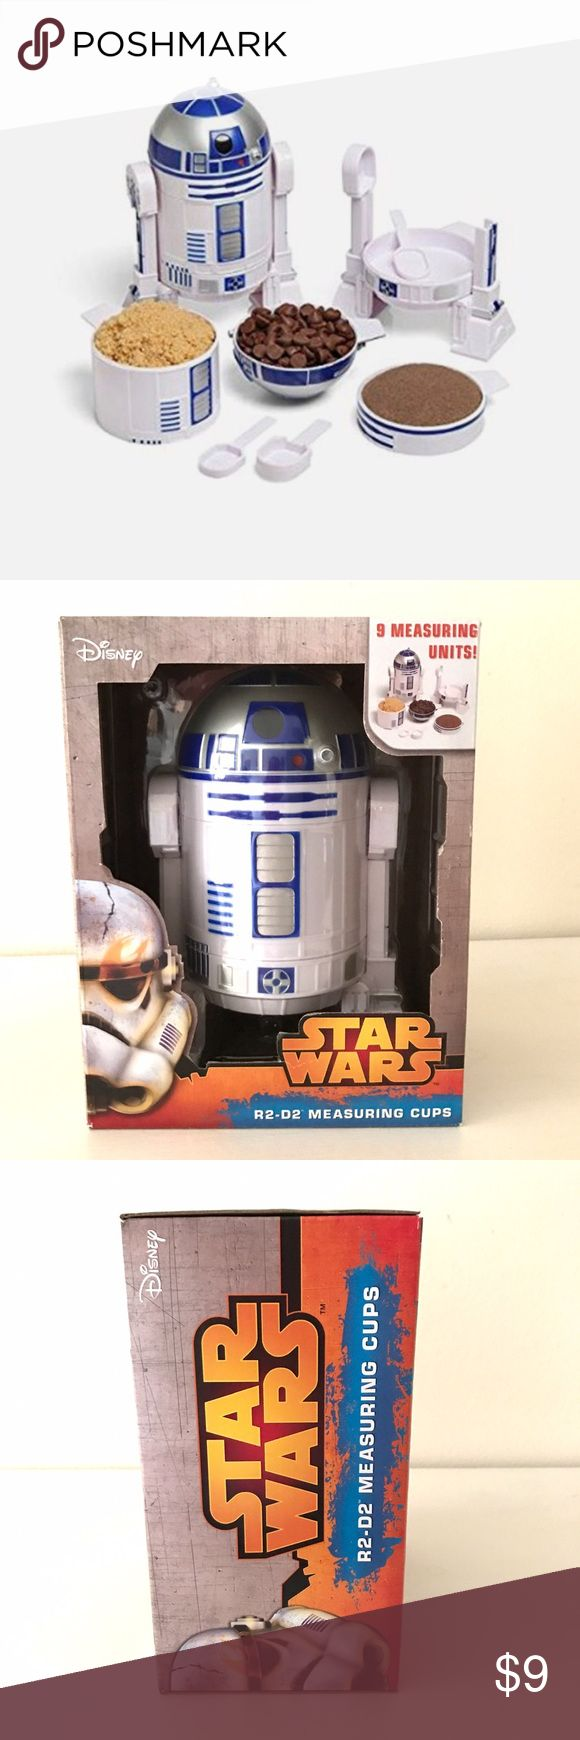 "Disney Star wars R2D2 Measuring cups Ok I know this isn't really ""posh"" but it is fabulous so I figure why not try. This is brand new in box. Retailing for $30 on Amazon right now and trending hard on eBay! I think it would make a great gift Bundled with the brand new R2D2 sequined backpack I have listed, get my bundle discount, and save on shipping! I would keep this, however; I'm not a huge fan of Star Wars (I know, gasp!) Star Wars Other"